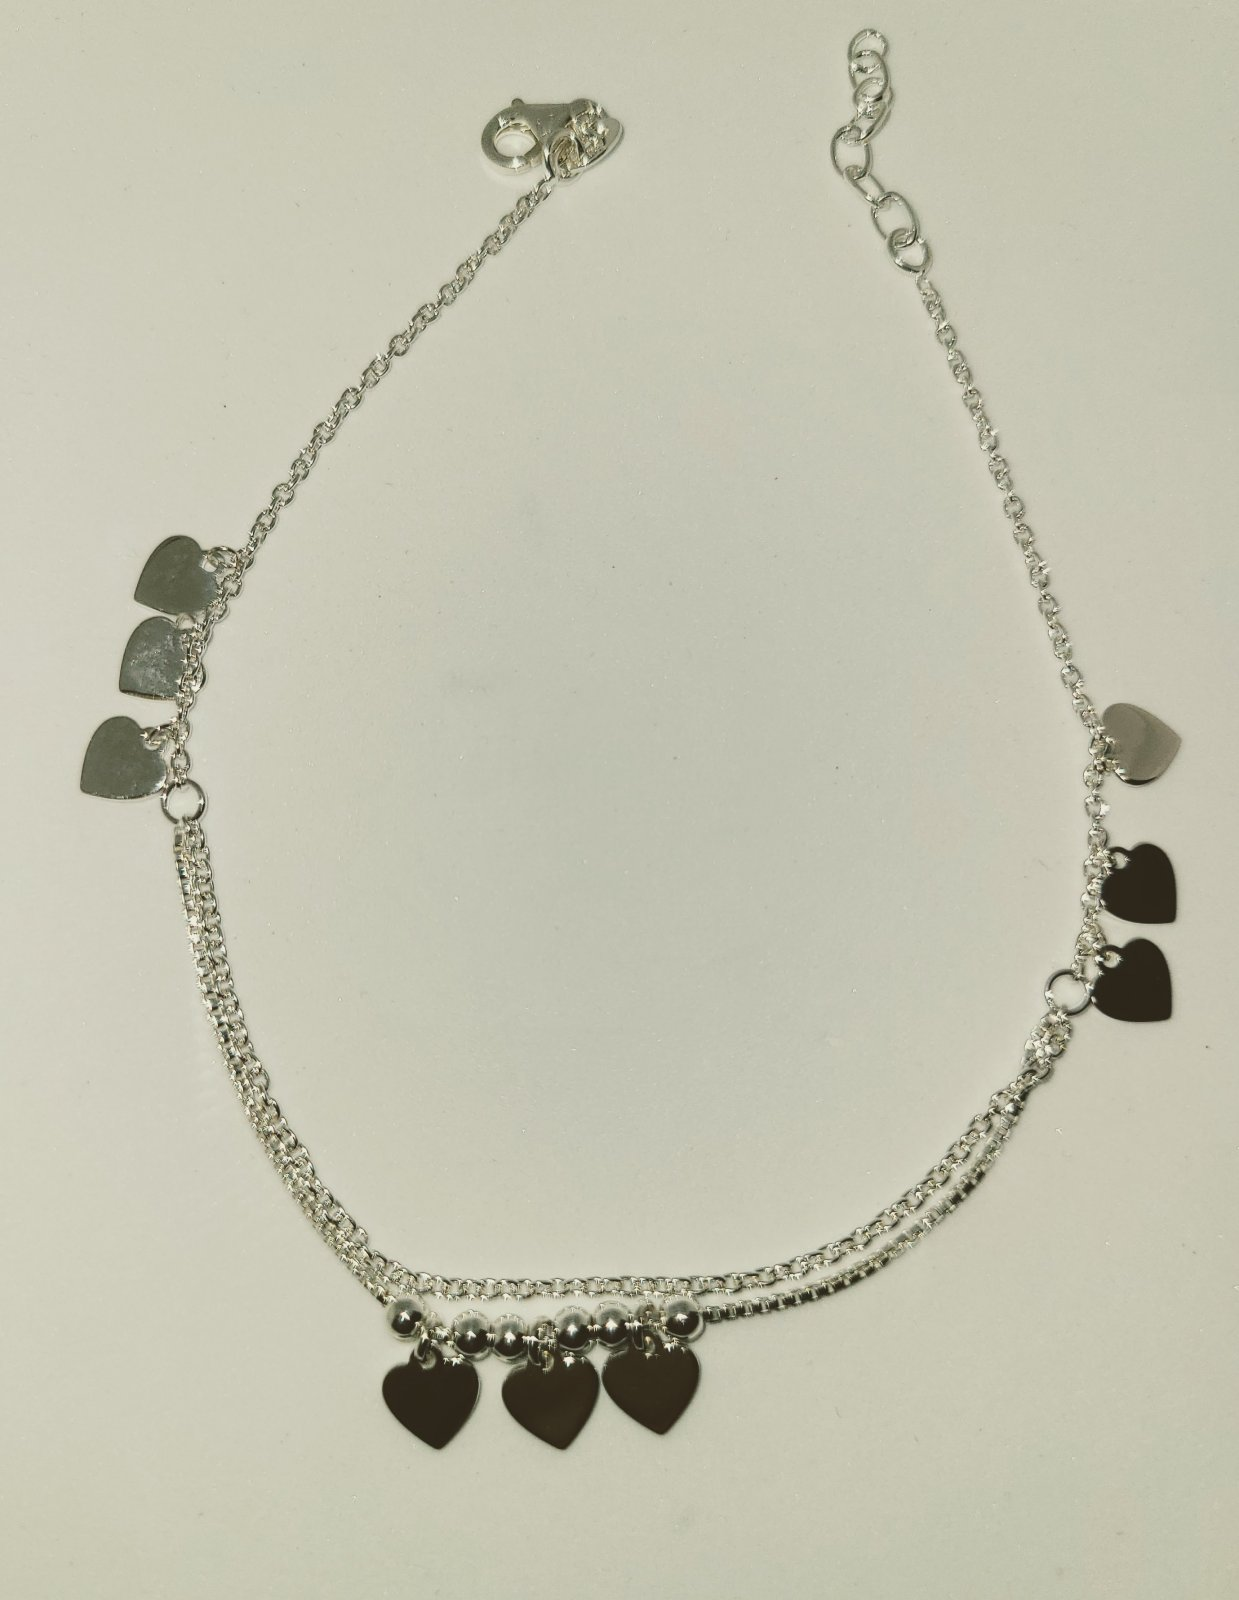 Anklet #5 - Double Heart Charm